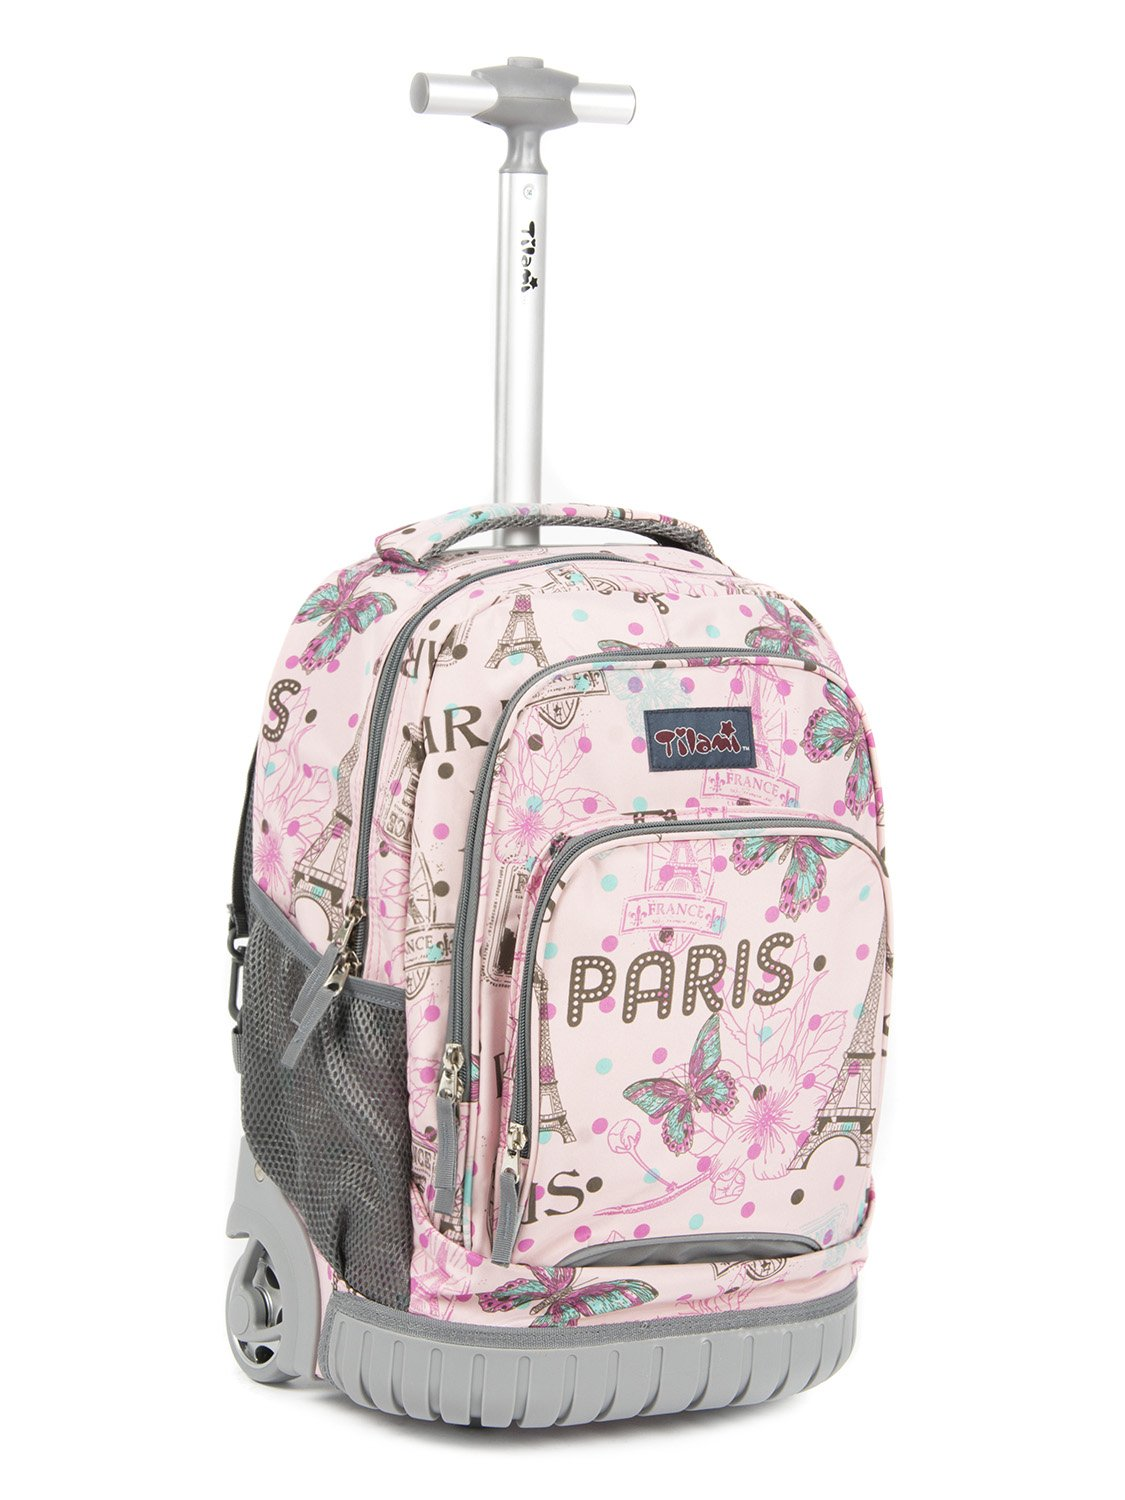 Tilami New Antifouling Design 18 Inch Human Engineering Design Laptop Wheeled Rolling Backpack Luggage for Girls(Pink Butterfly) by Tilami